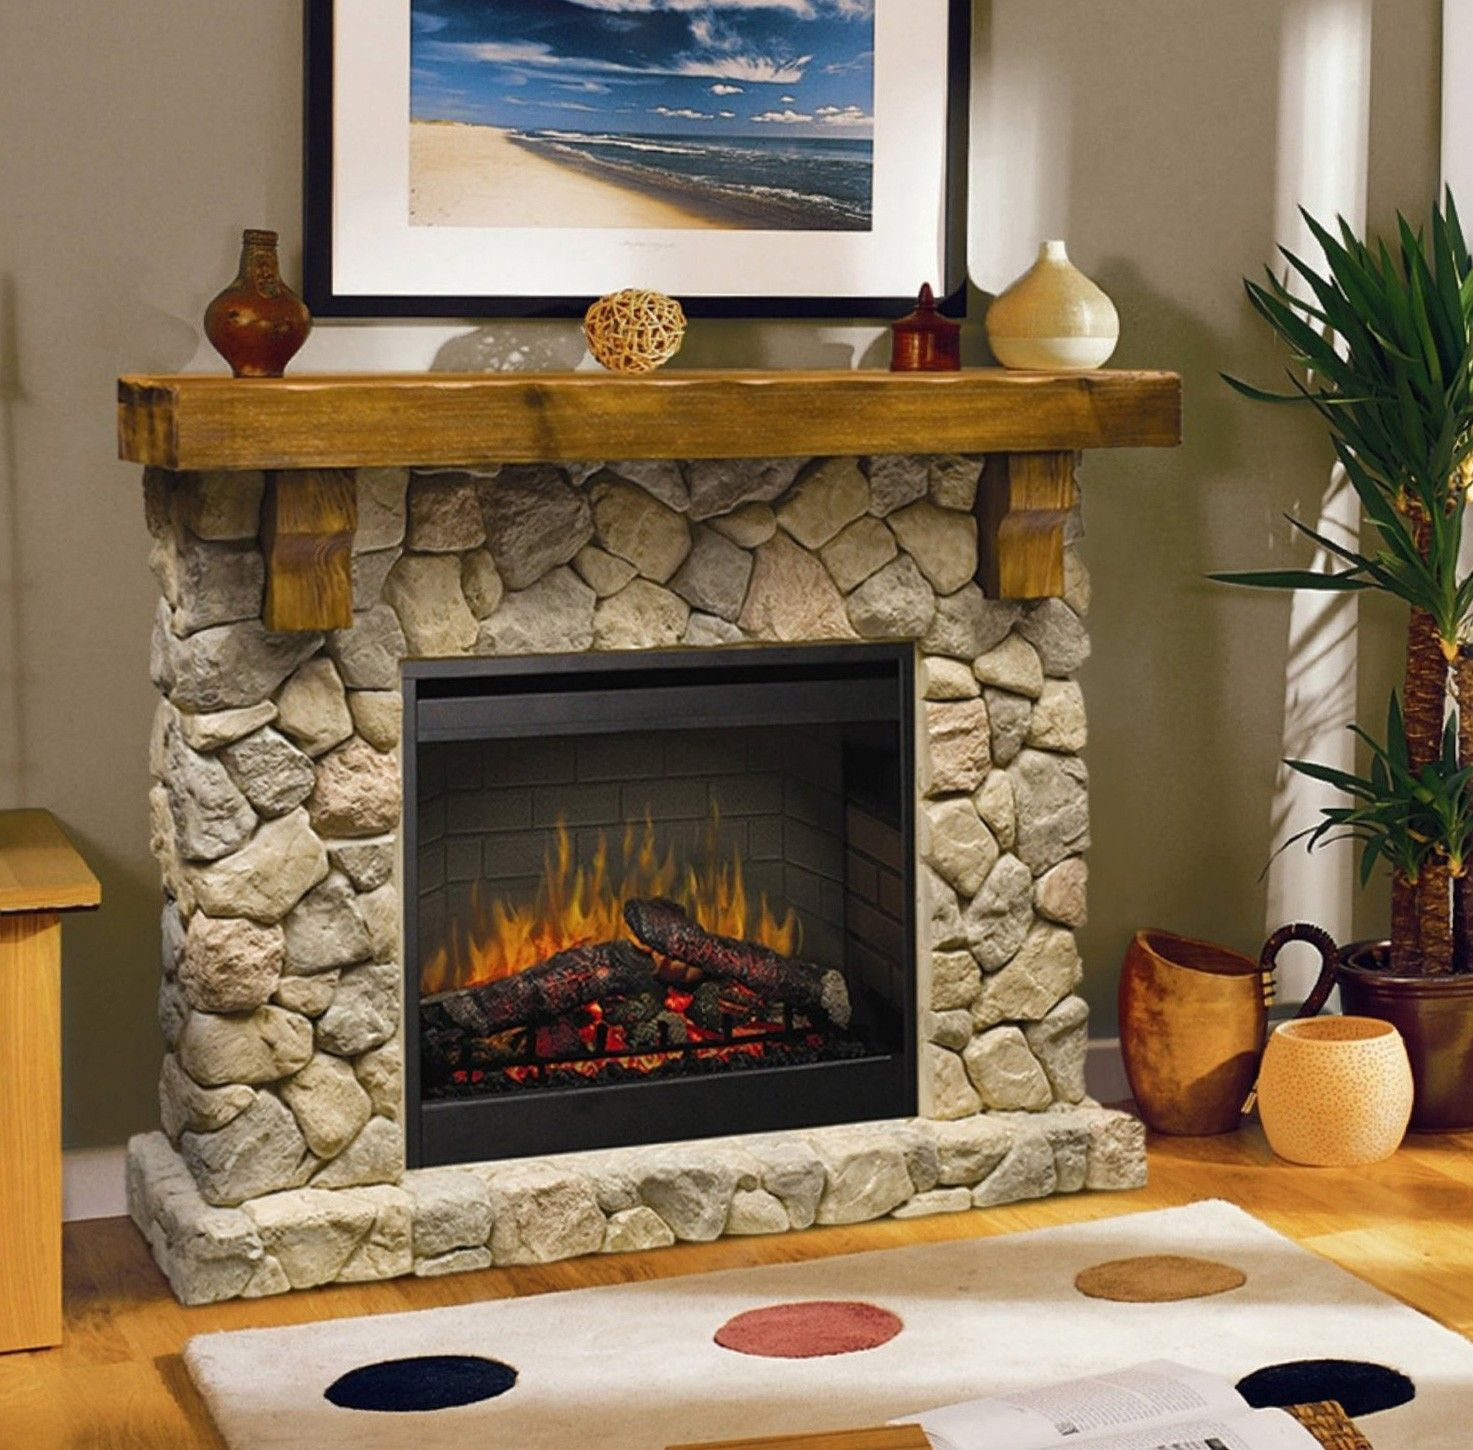 Electrical Home Design Ideas: How To Build Rustic Fireplace Mantels